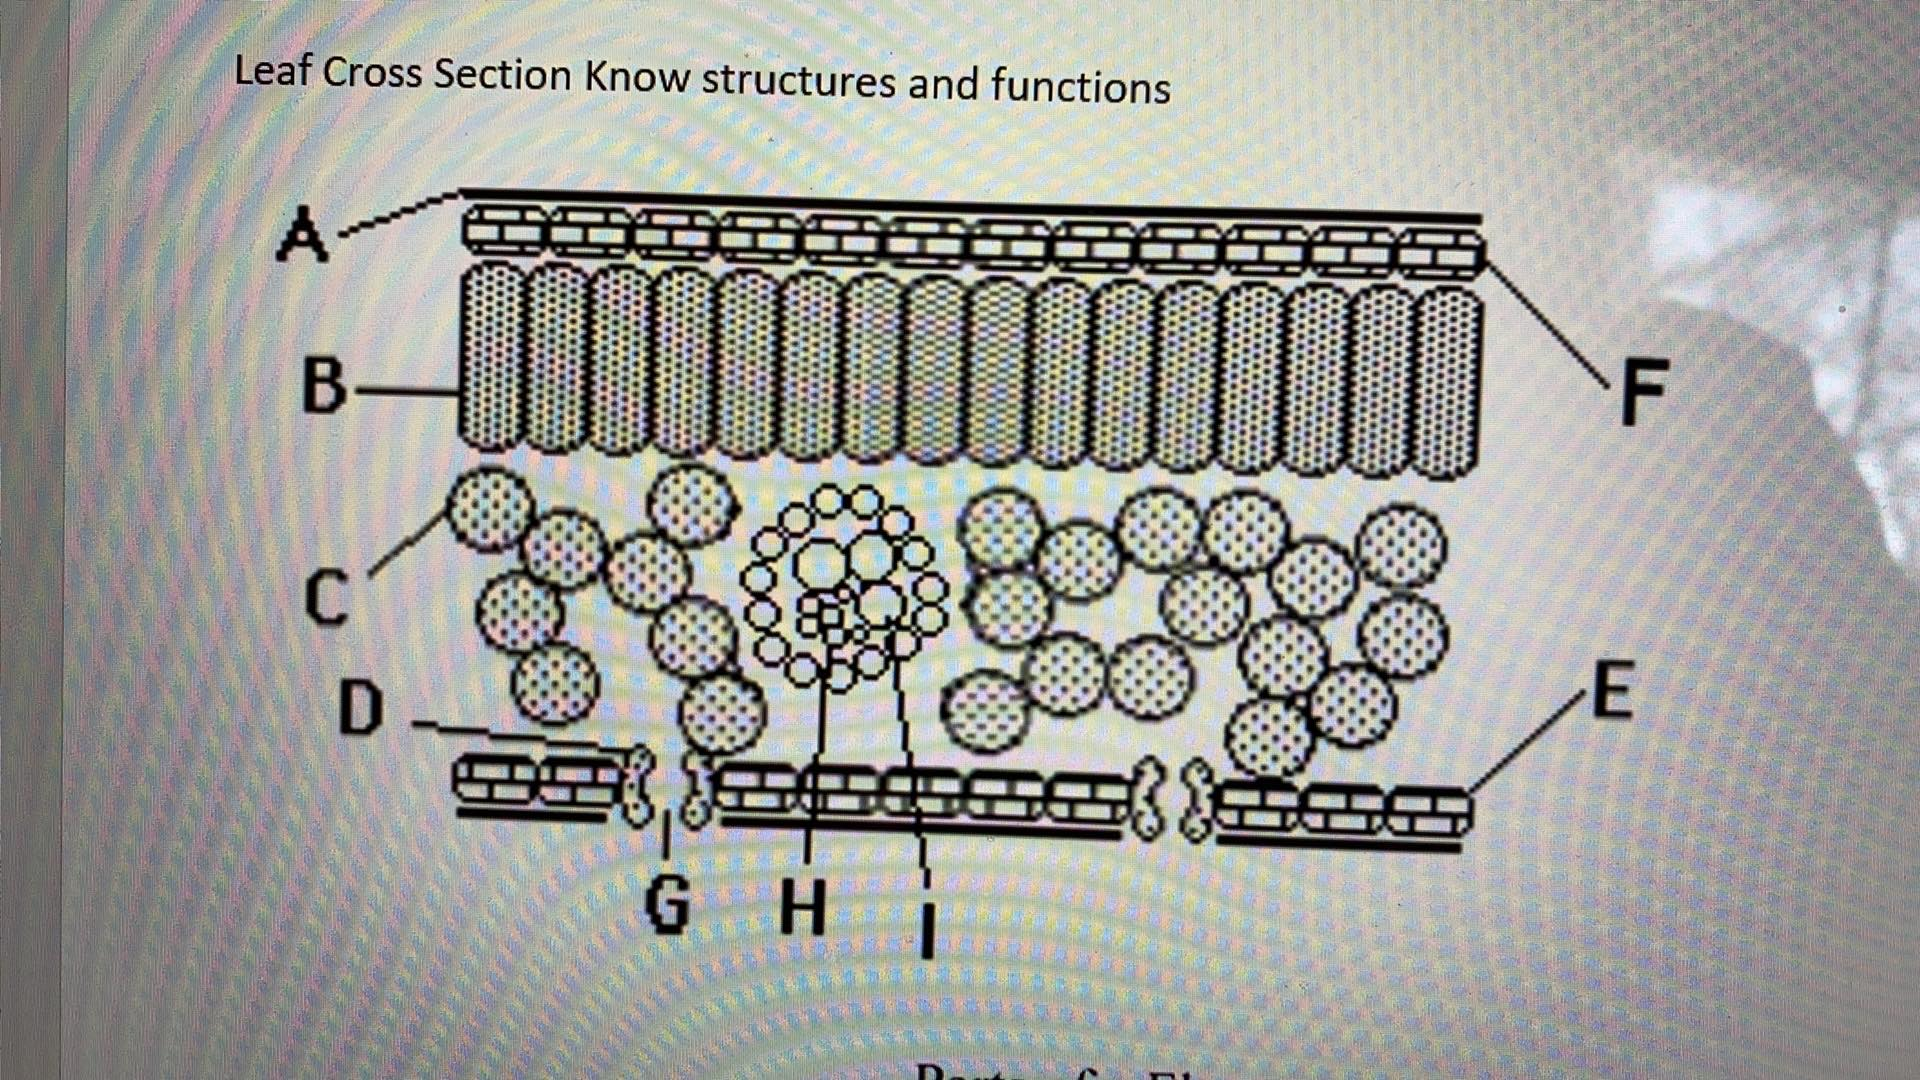 Leaf Cross Section Know structures and functions A- GH